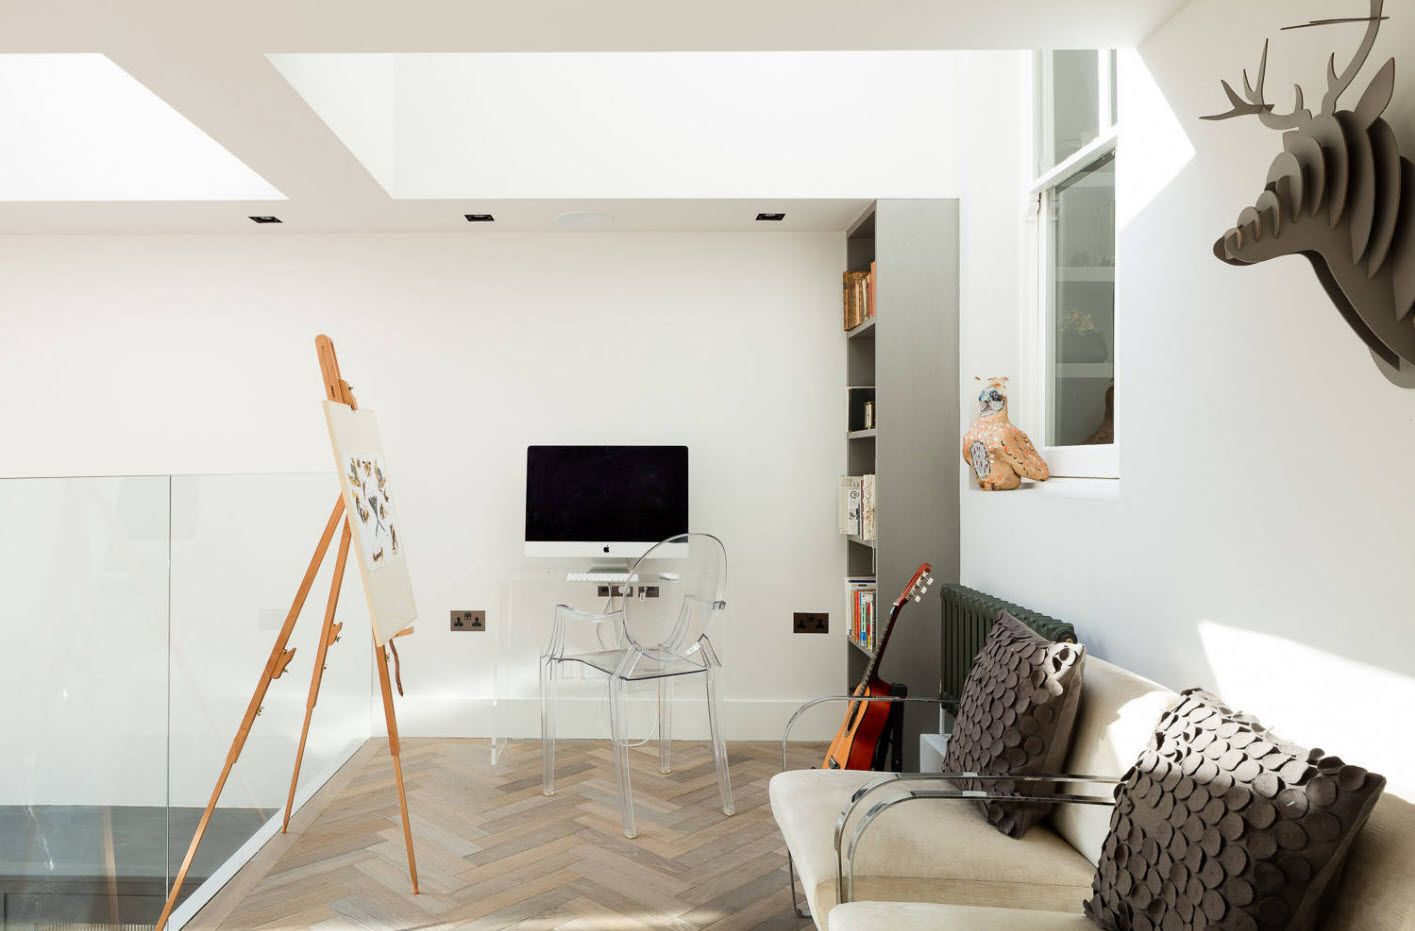 Top 100 Modern Home Office Design Trends 2017. Classic parquet and artistic set in the room